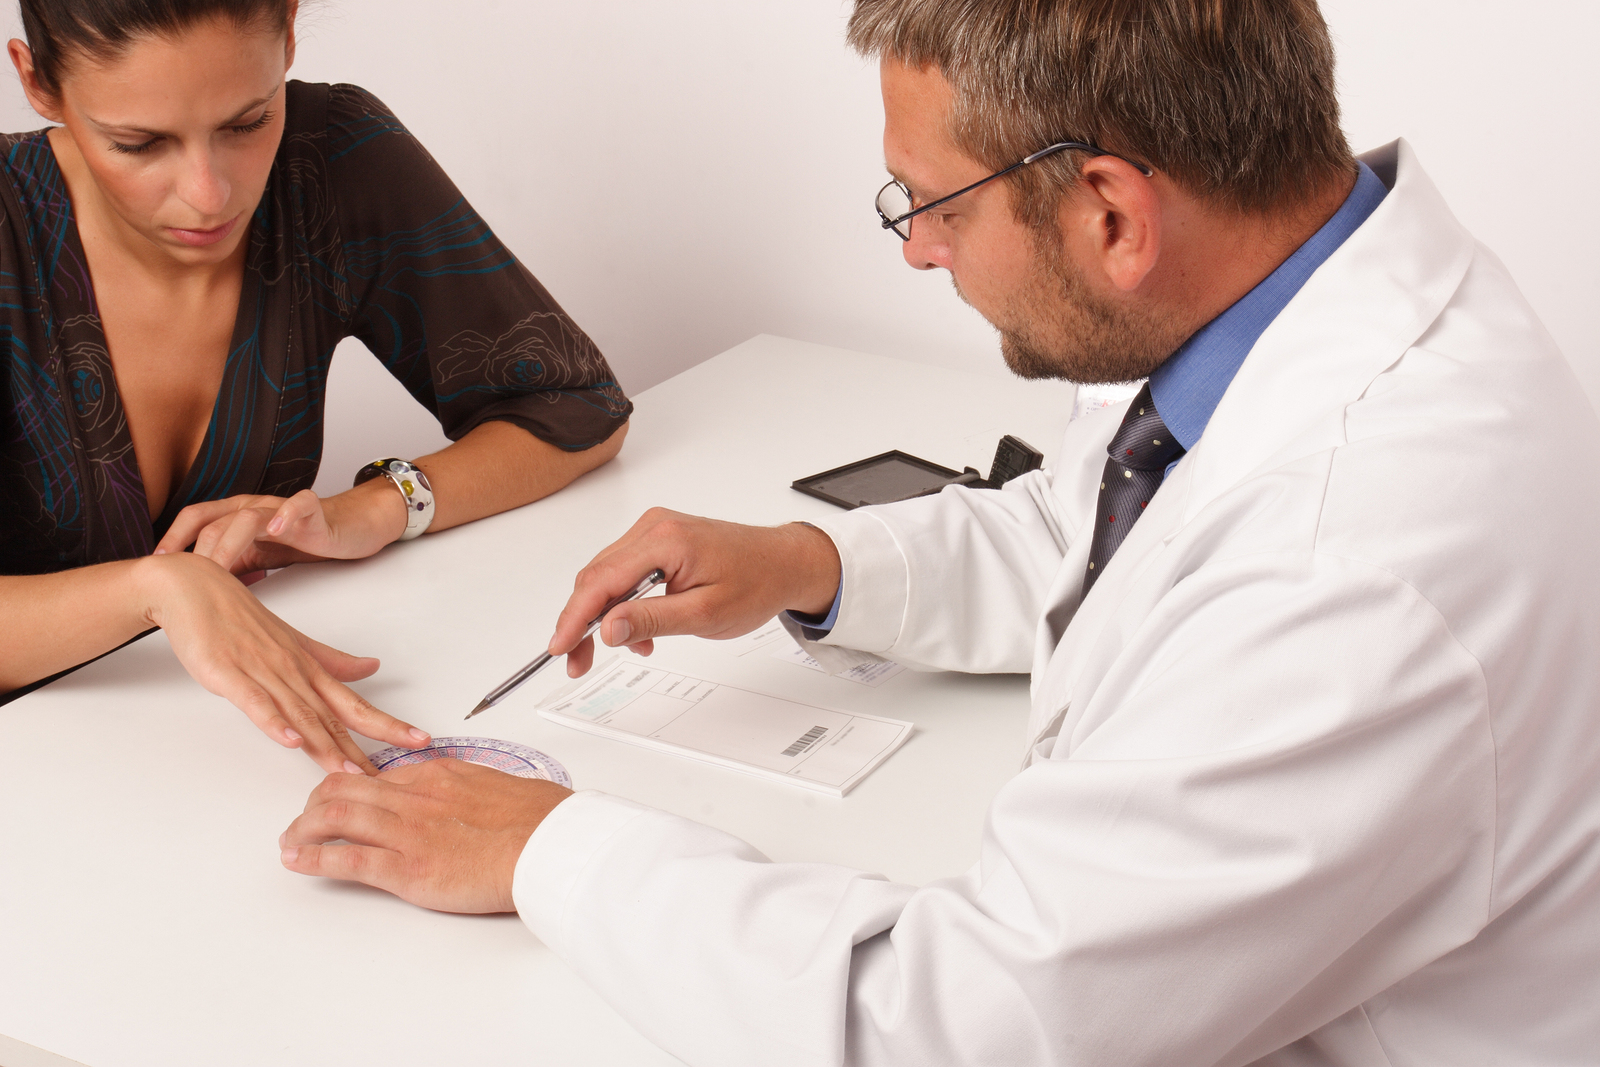 Executive Health Exams - What is Genetic Panel Testing?